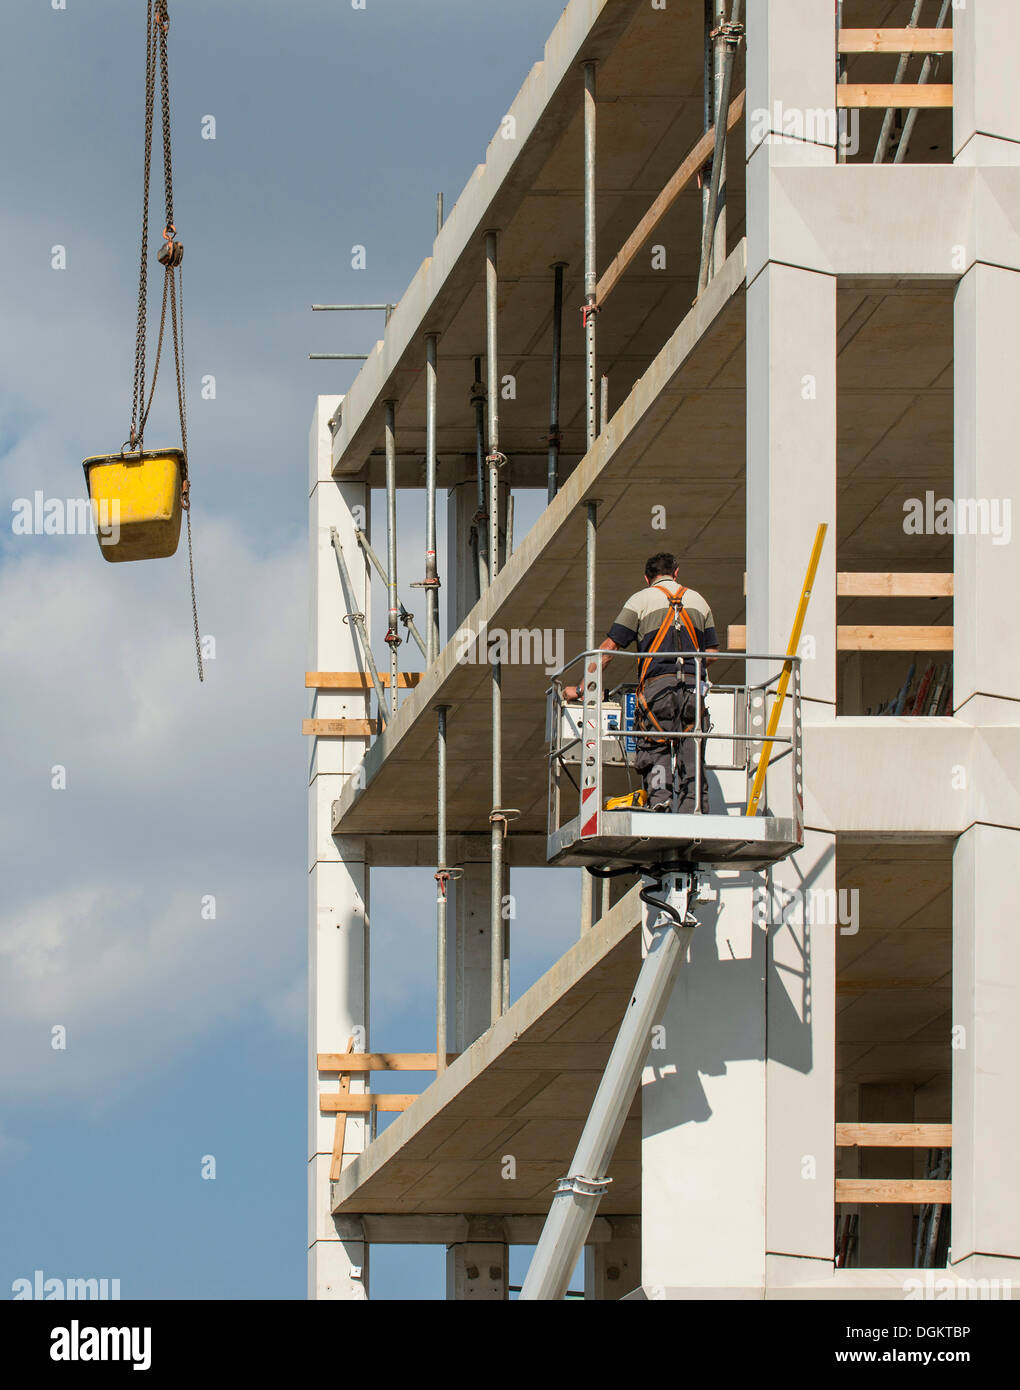 Workers in a lift at a construction site, a concrete tank is being lowered from a crane, work safety, PublicGround - Stock Image